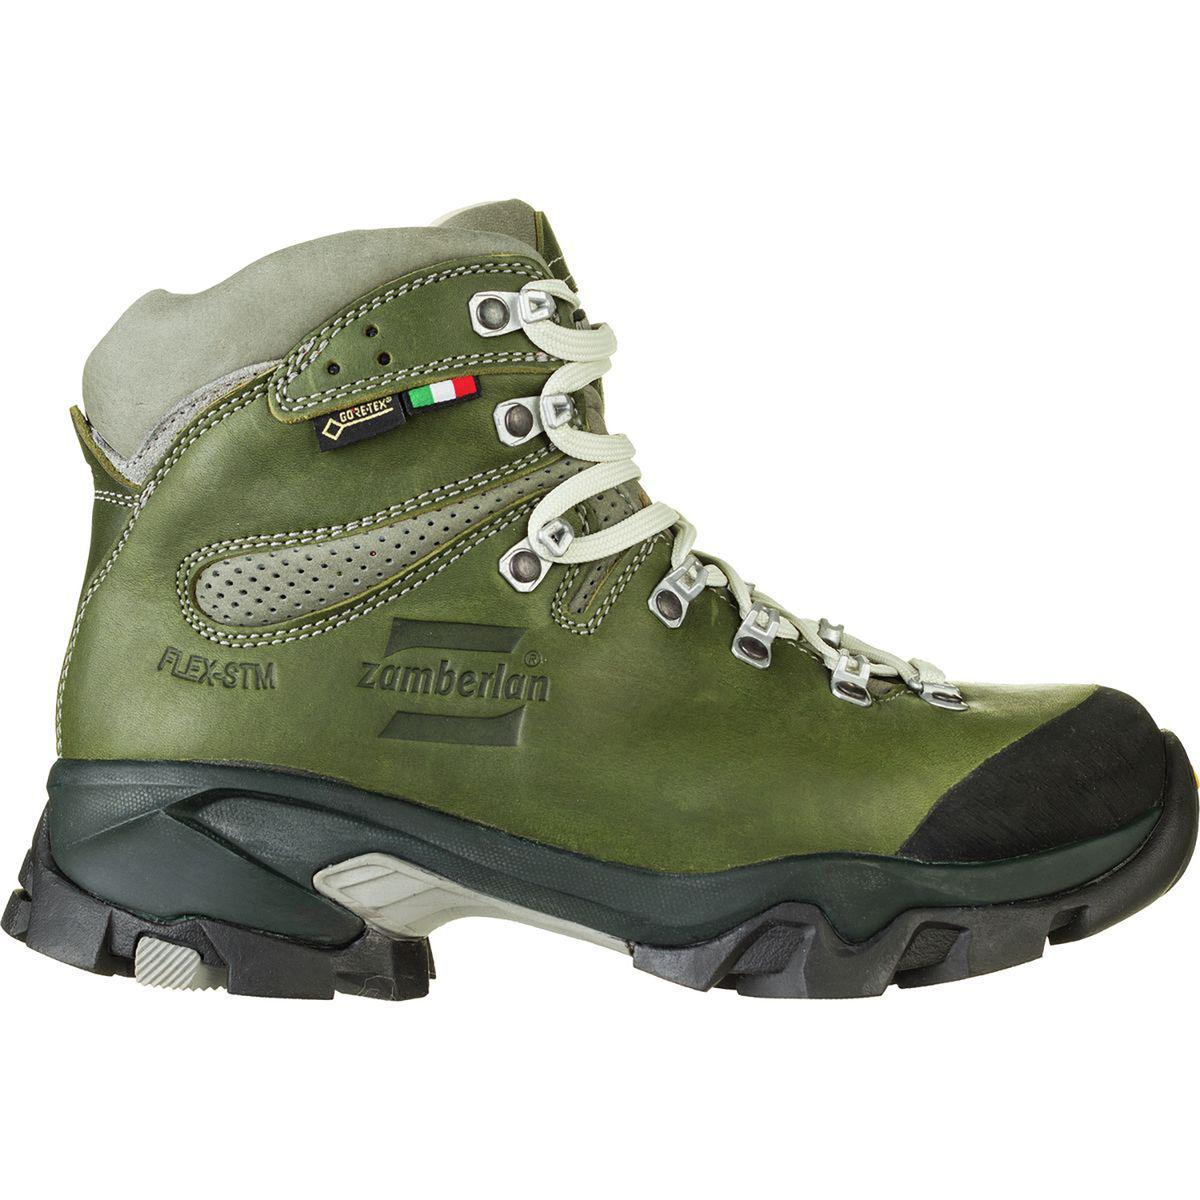 2ac745adcab Lyst - Zamberlan Vioz Lux Gtx Rr Backpacking Boot in Green - Save 4%